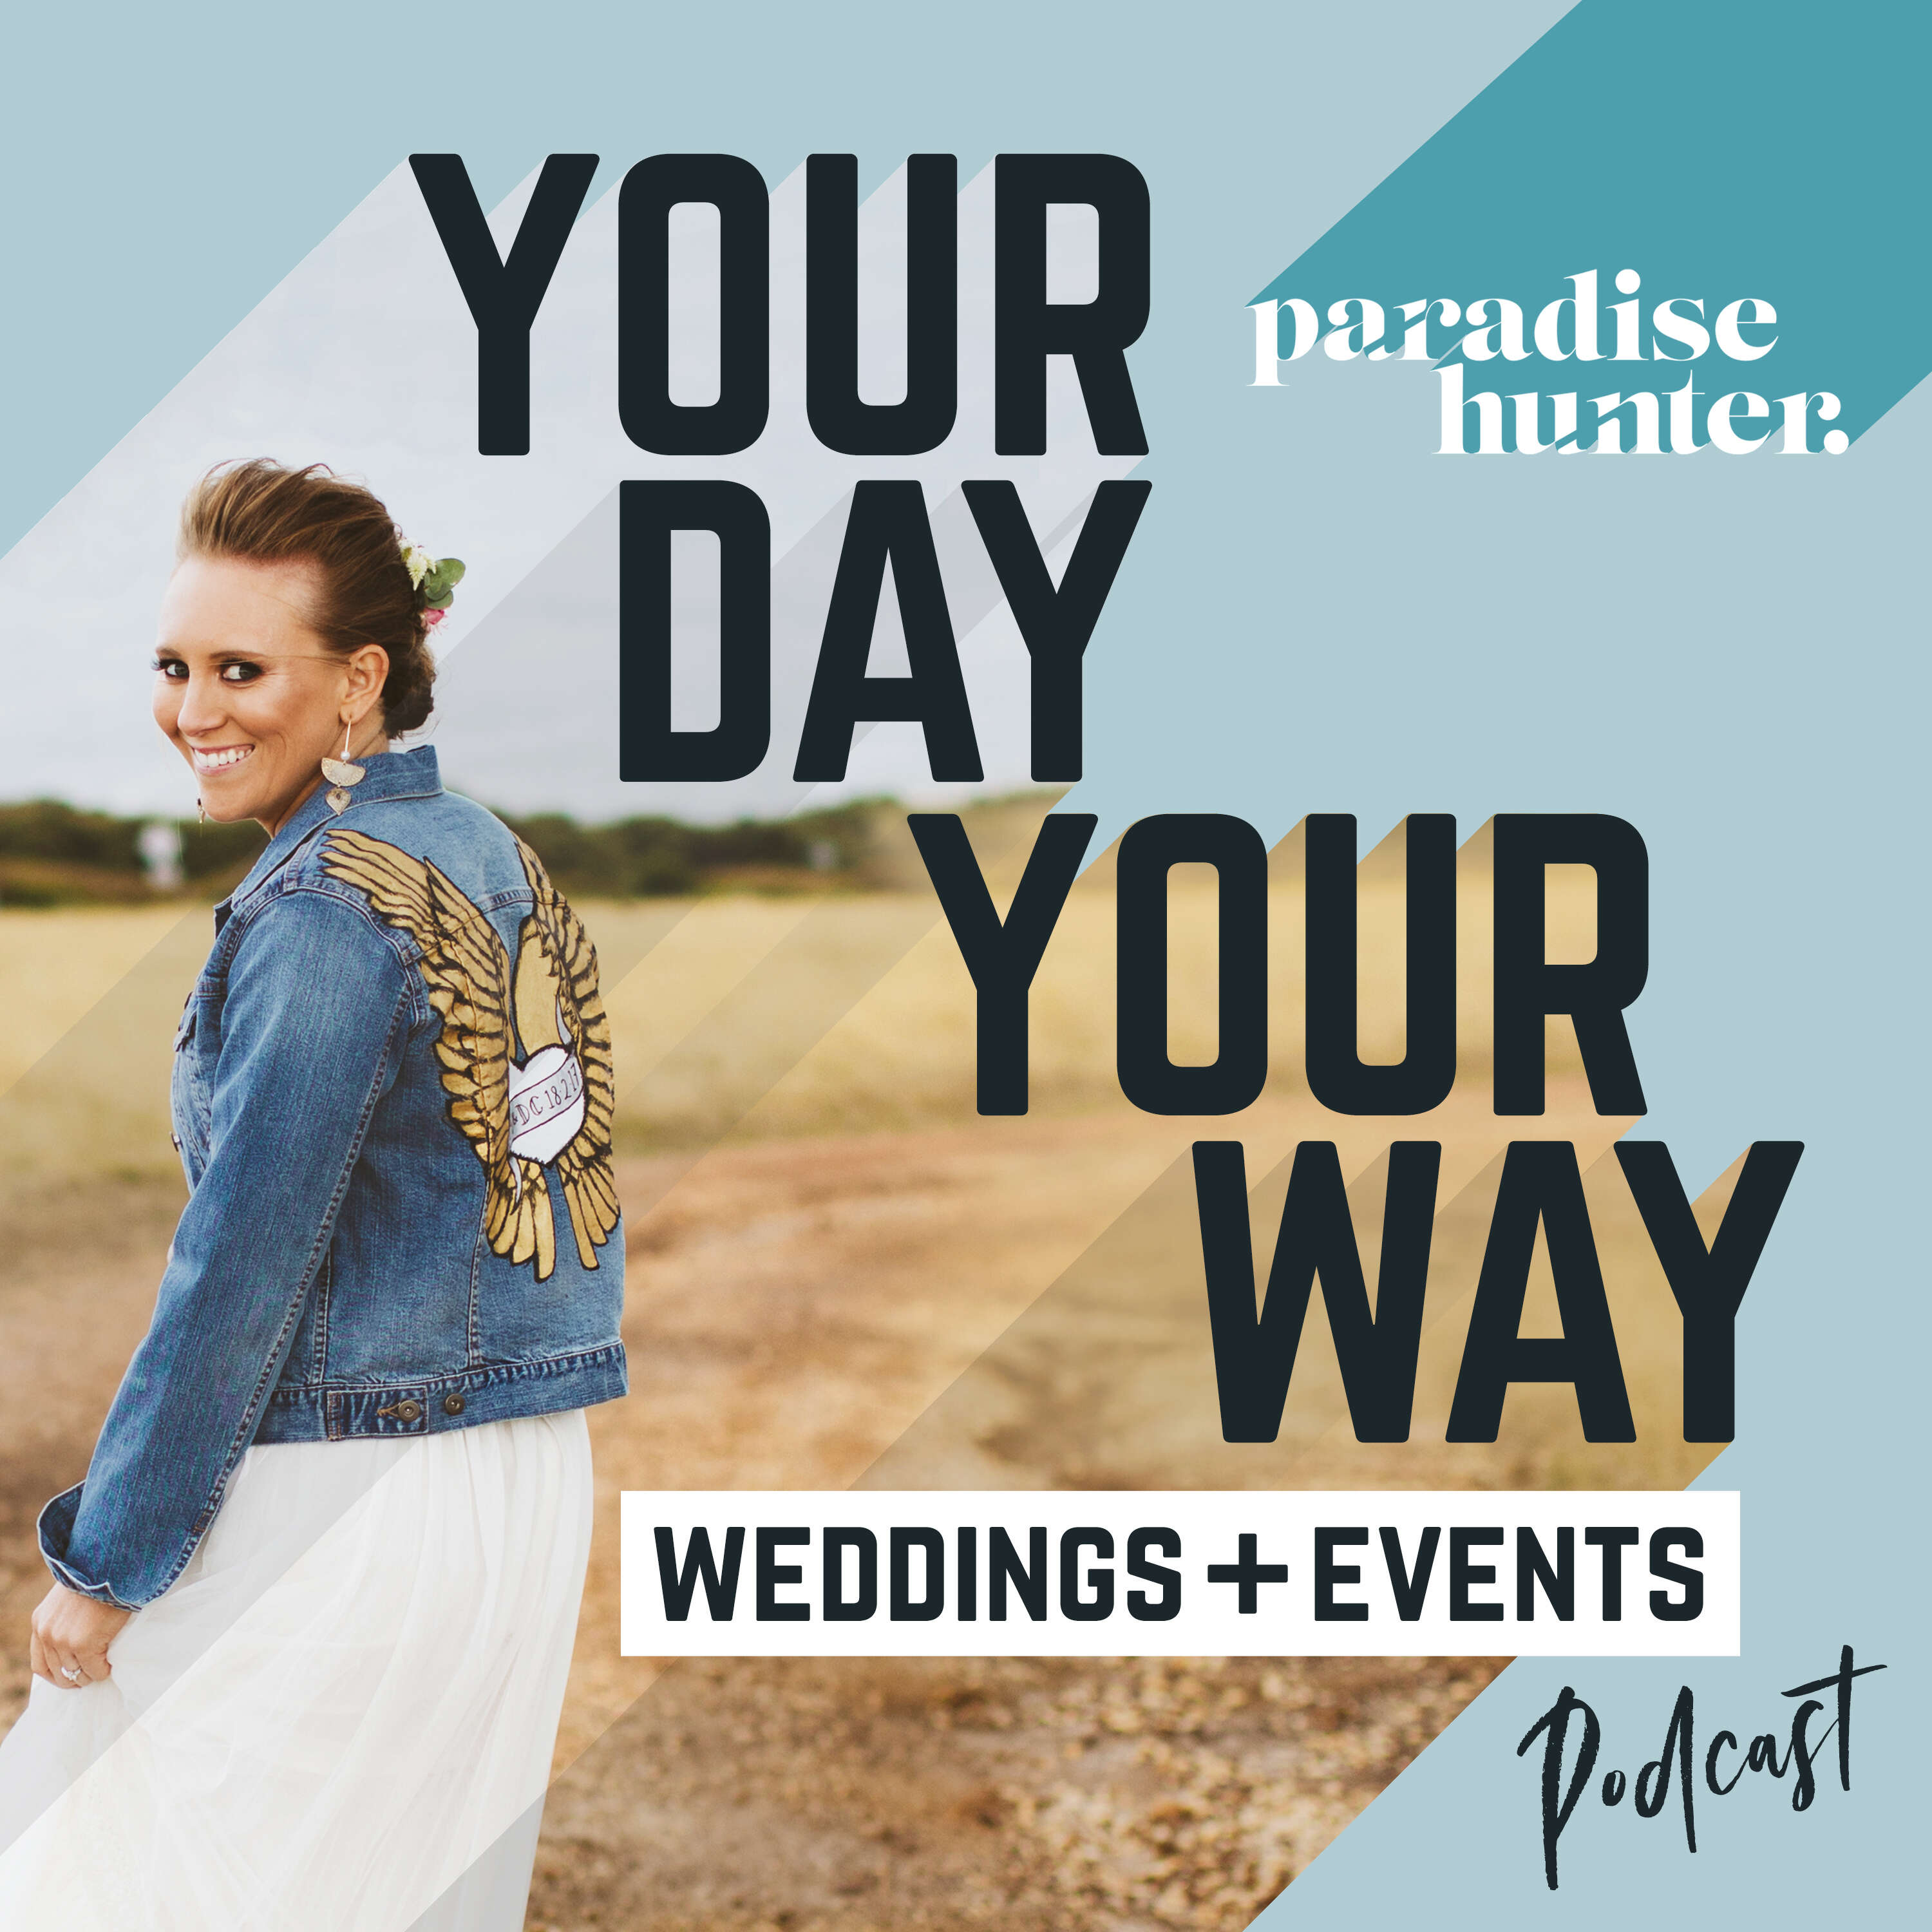 Your Day, Your Way Weddings + Events Podcast podcast show image